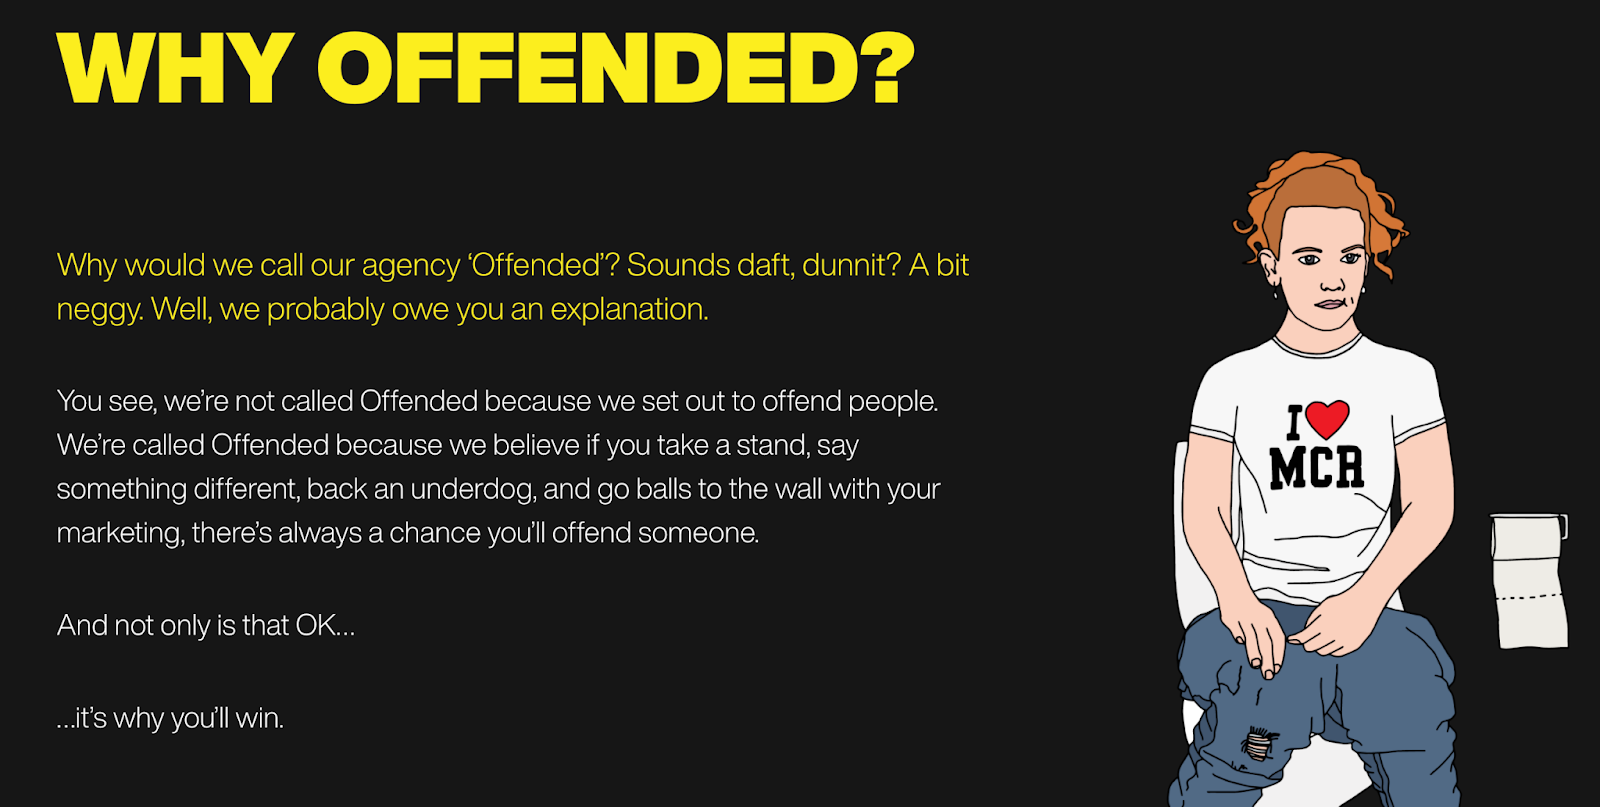 Offended challenges category conventions